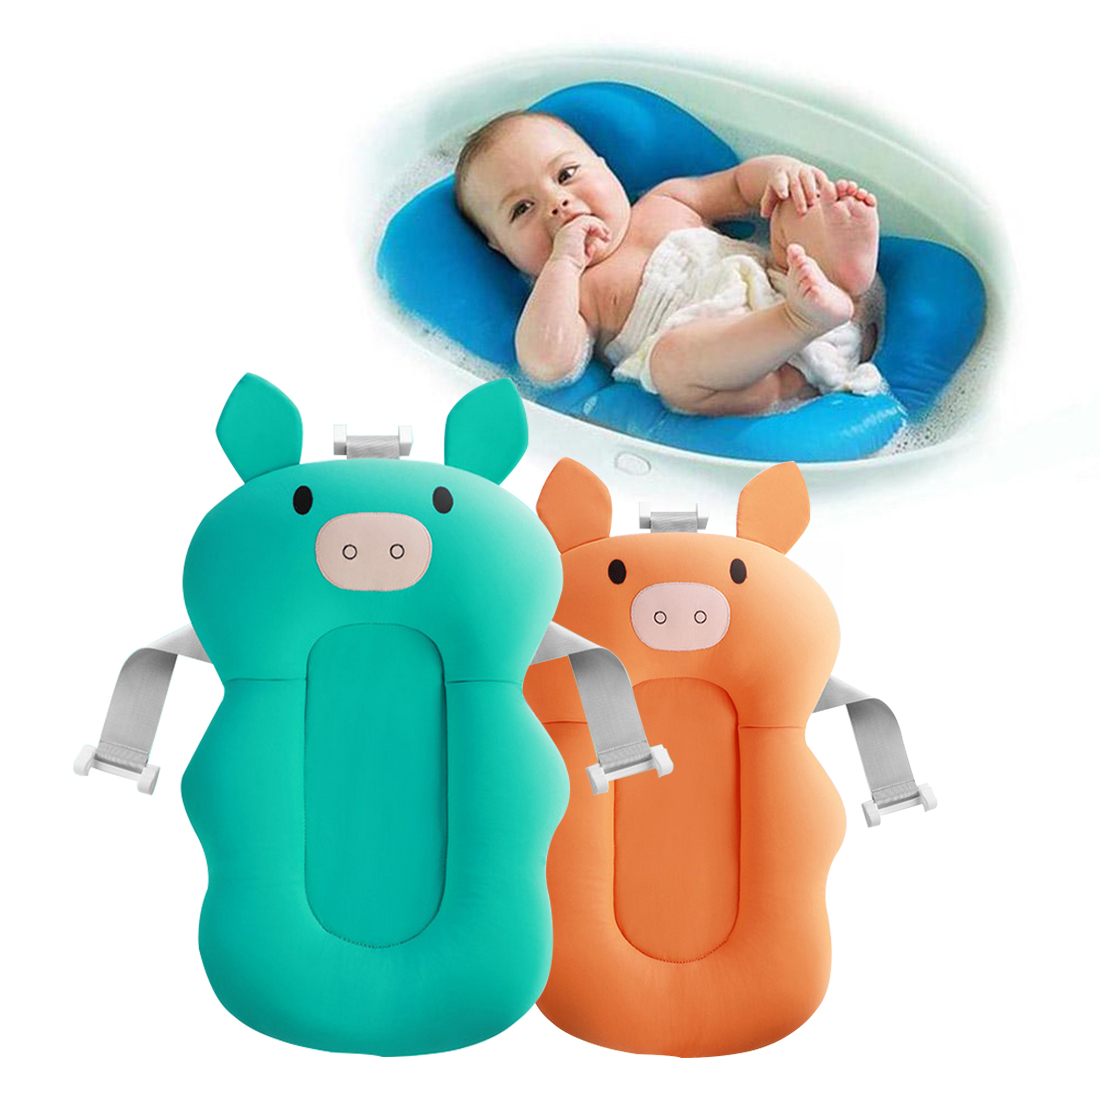 Non Slip Baby Bather and Portable Baby Bath Pad with Soft Air Cushion for Support during Shower